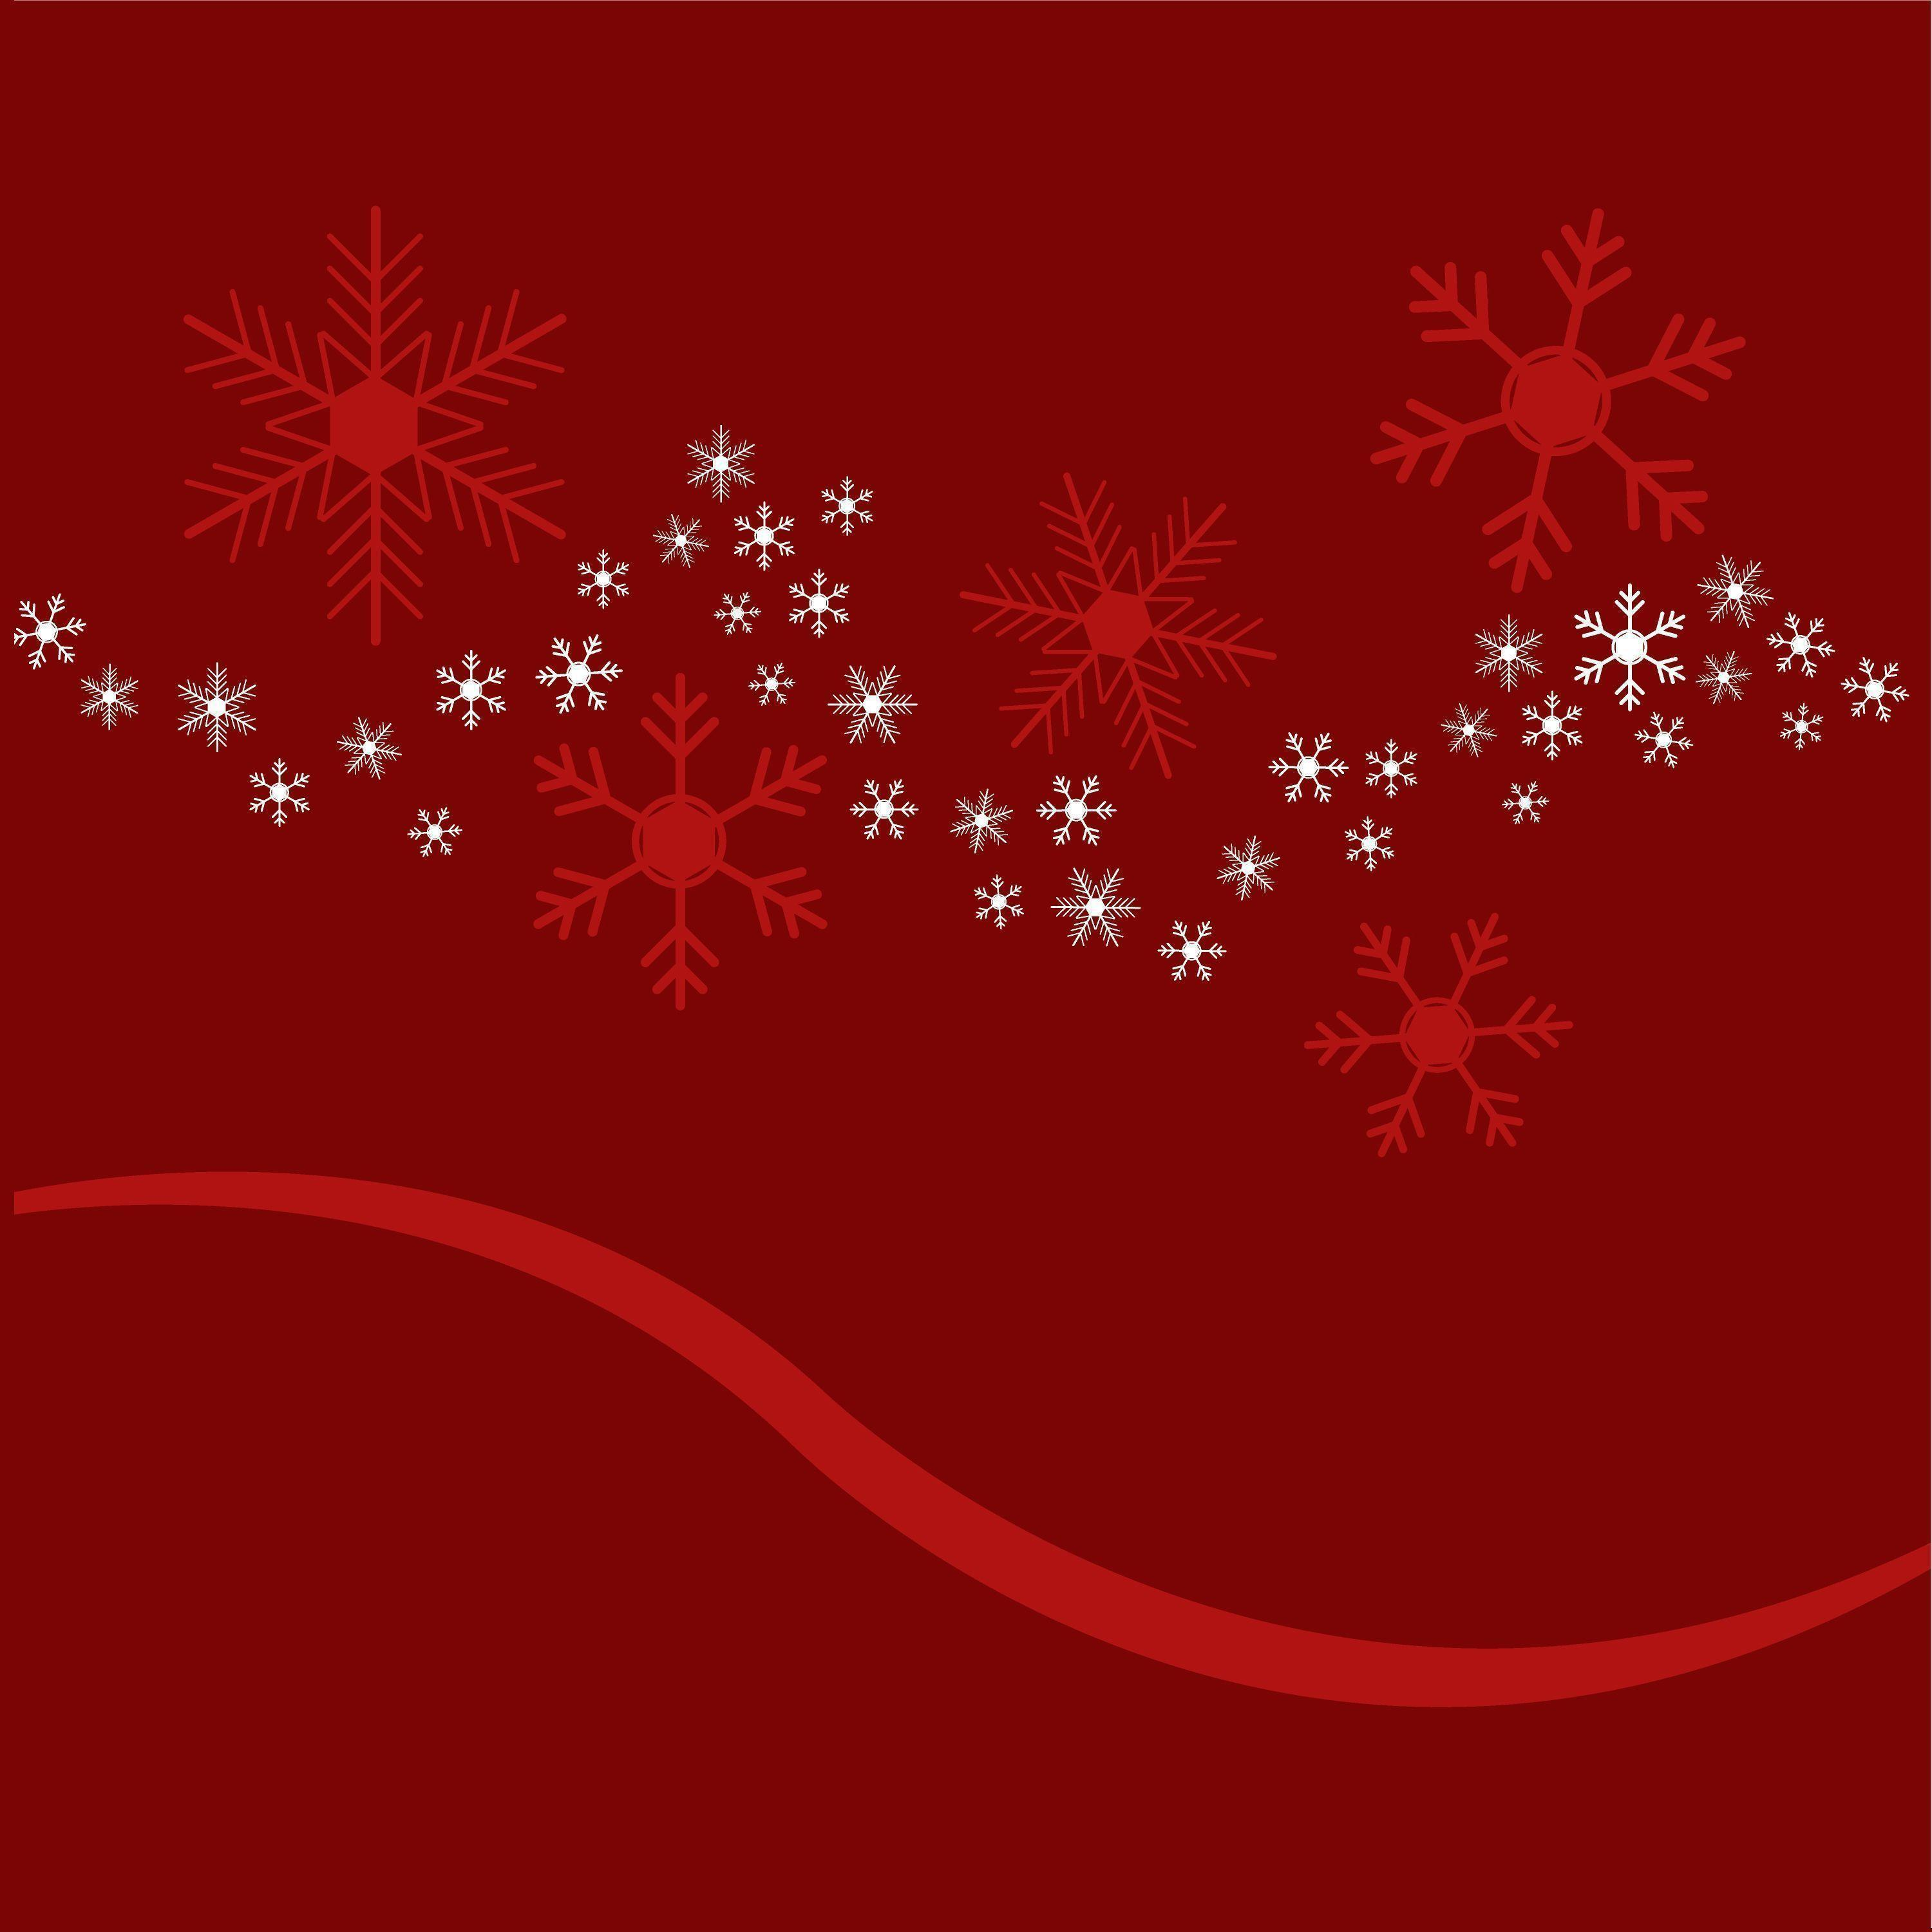 Christmas Background Tumblr.Red Christmas Backgrounds Wallpaper Cave